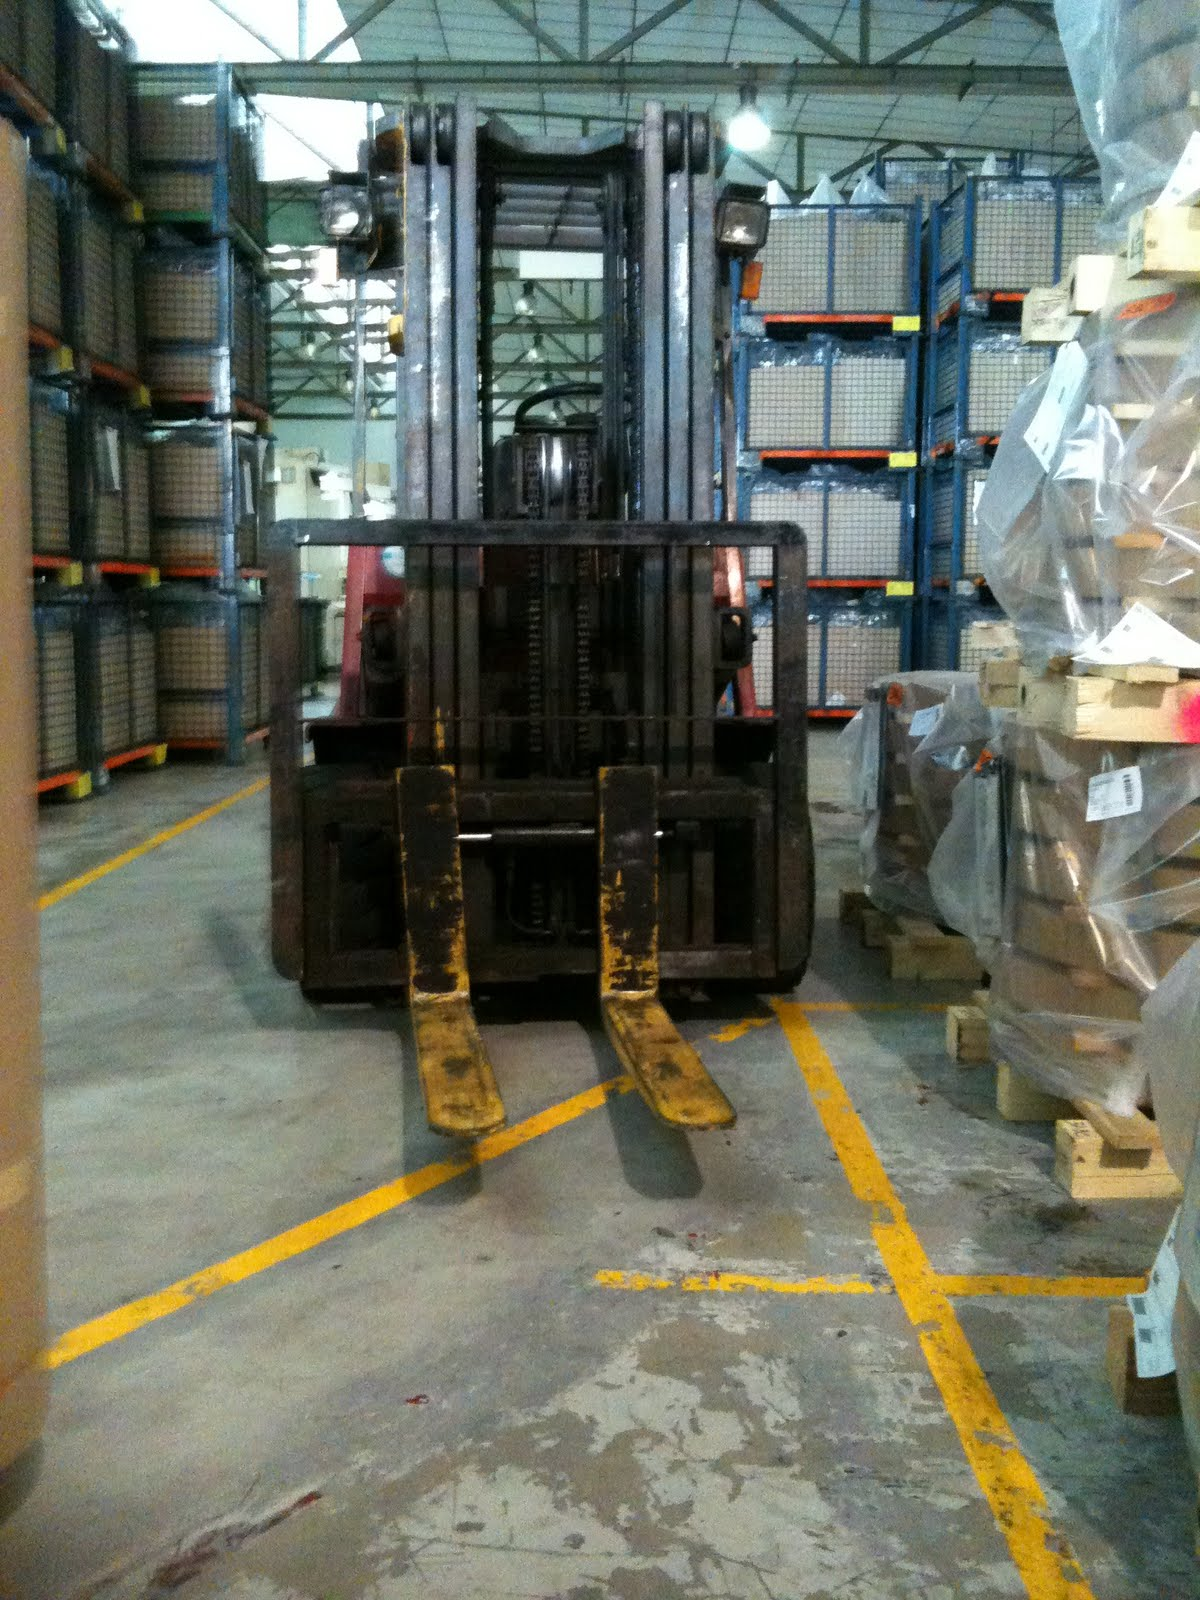 Ehs Singapore Unsafe Conditions Amp Acts Involving Forklift